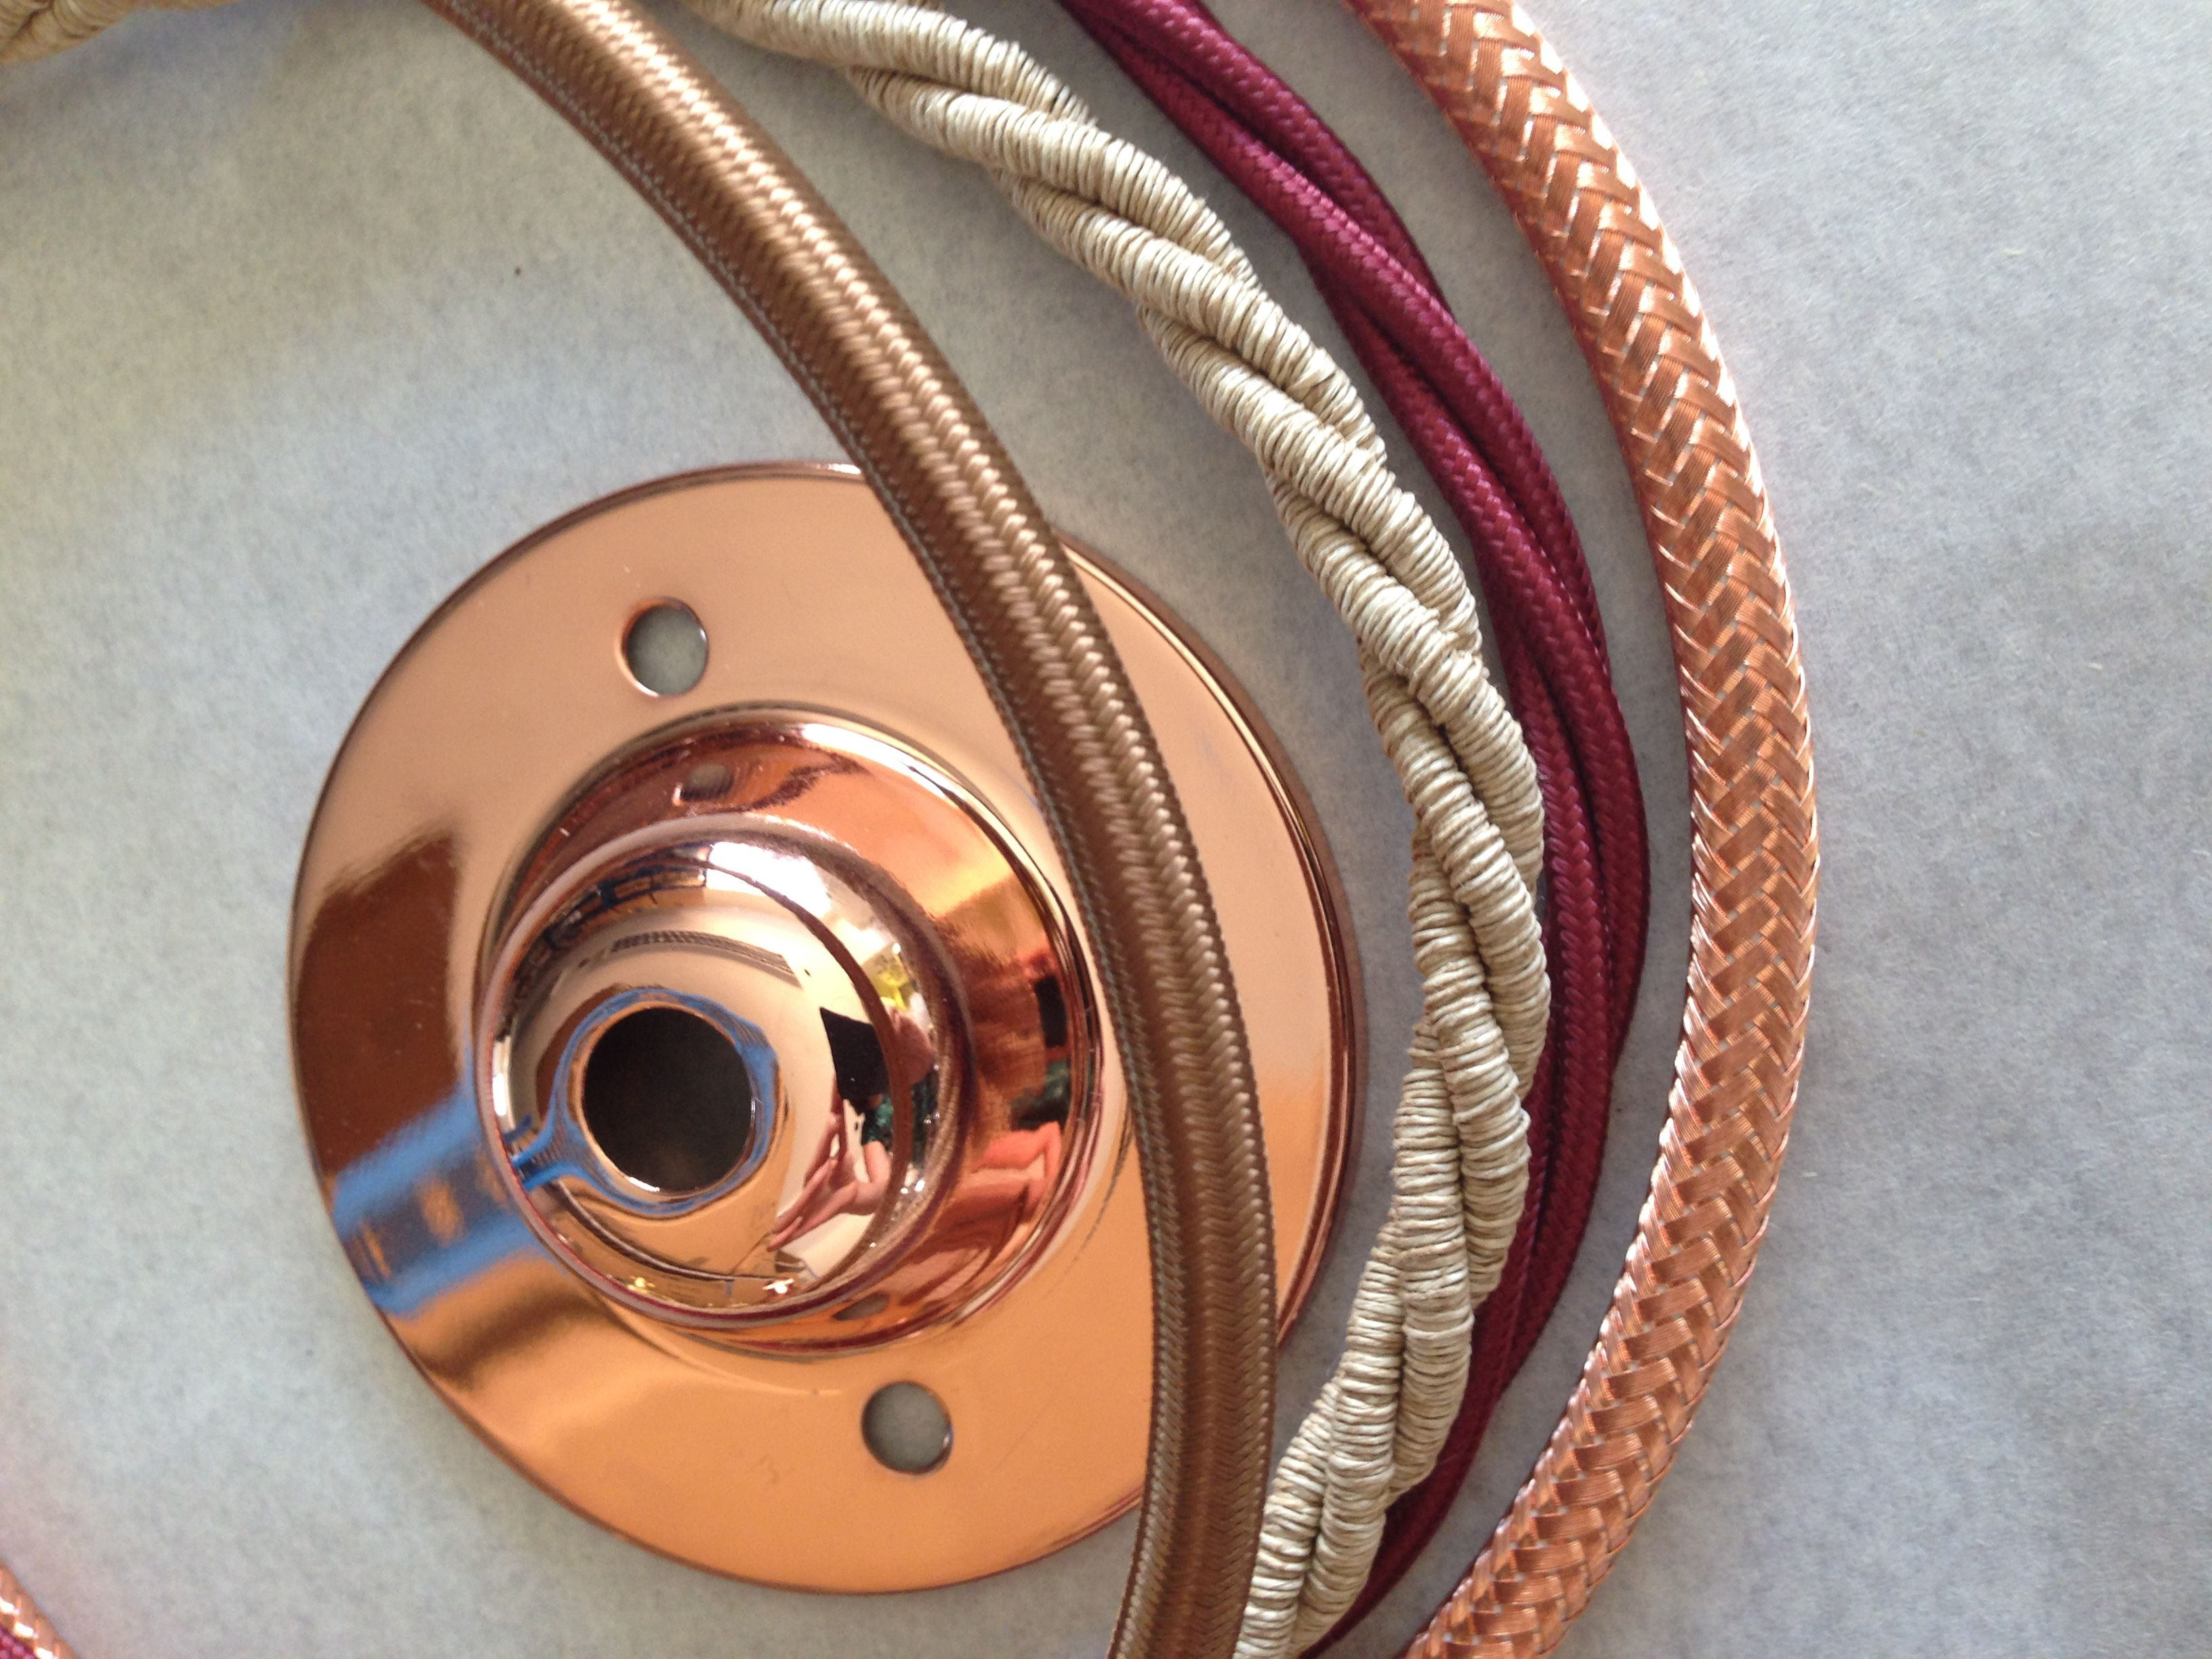 Copper 72mm D ceiling rose with a mix of flex colours - Havana gold, jute, burgundy and copper braid